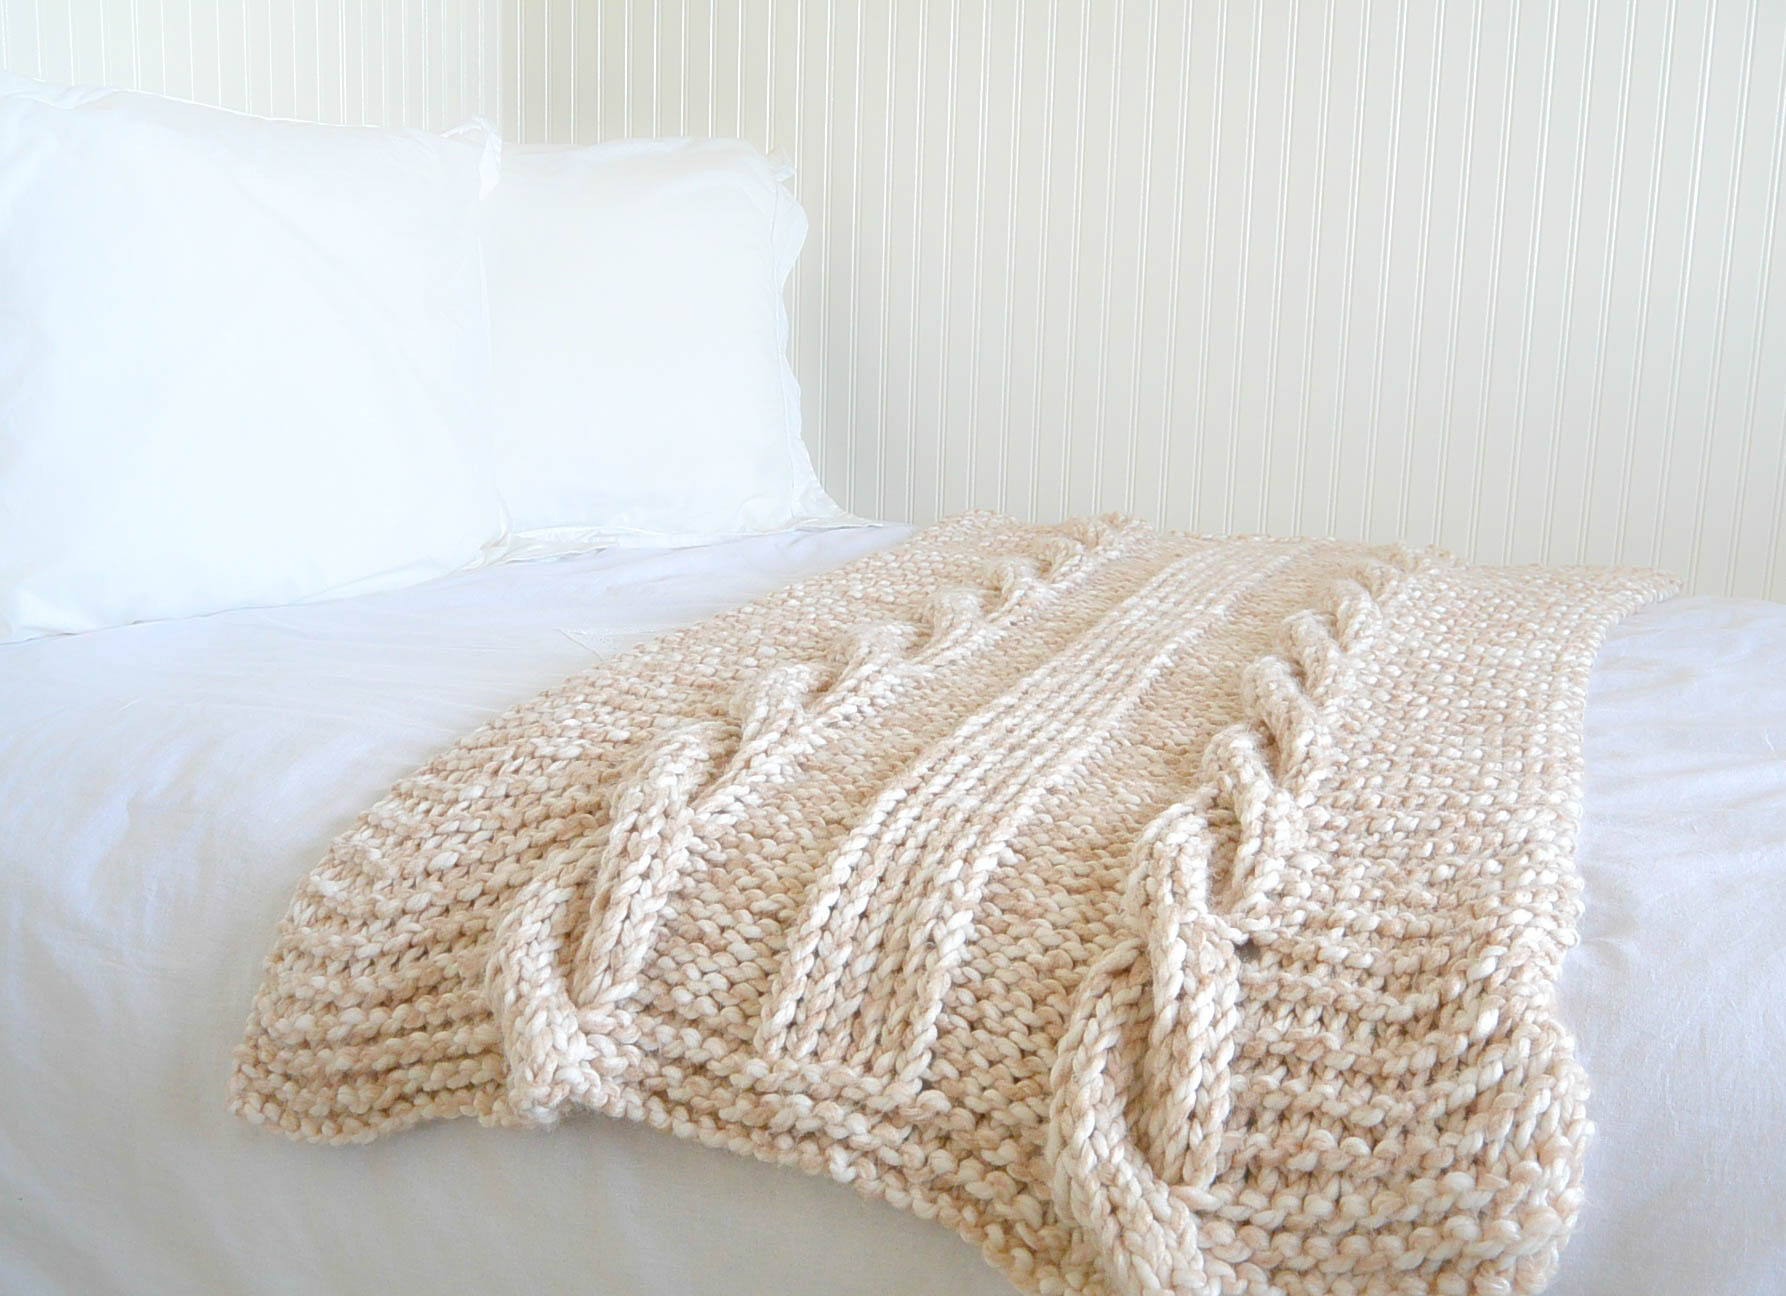 Simple Knitting Stitches : Endless Cables Chunky Knit Throw Pattern   Mama In A Stitch